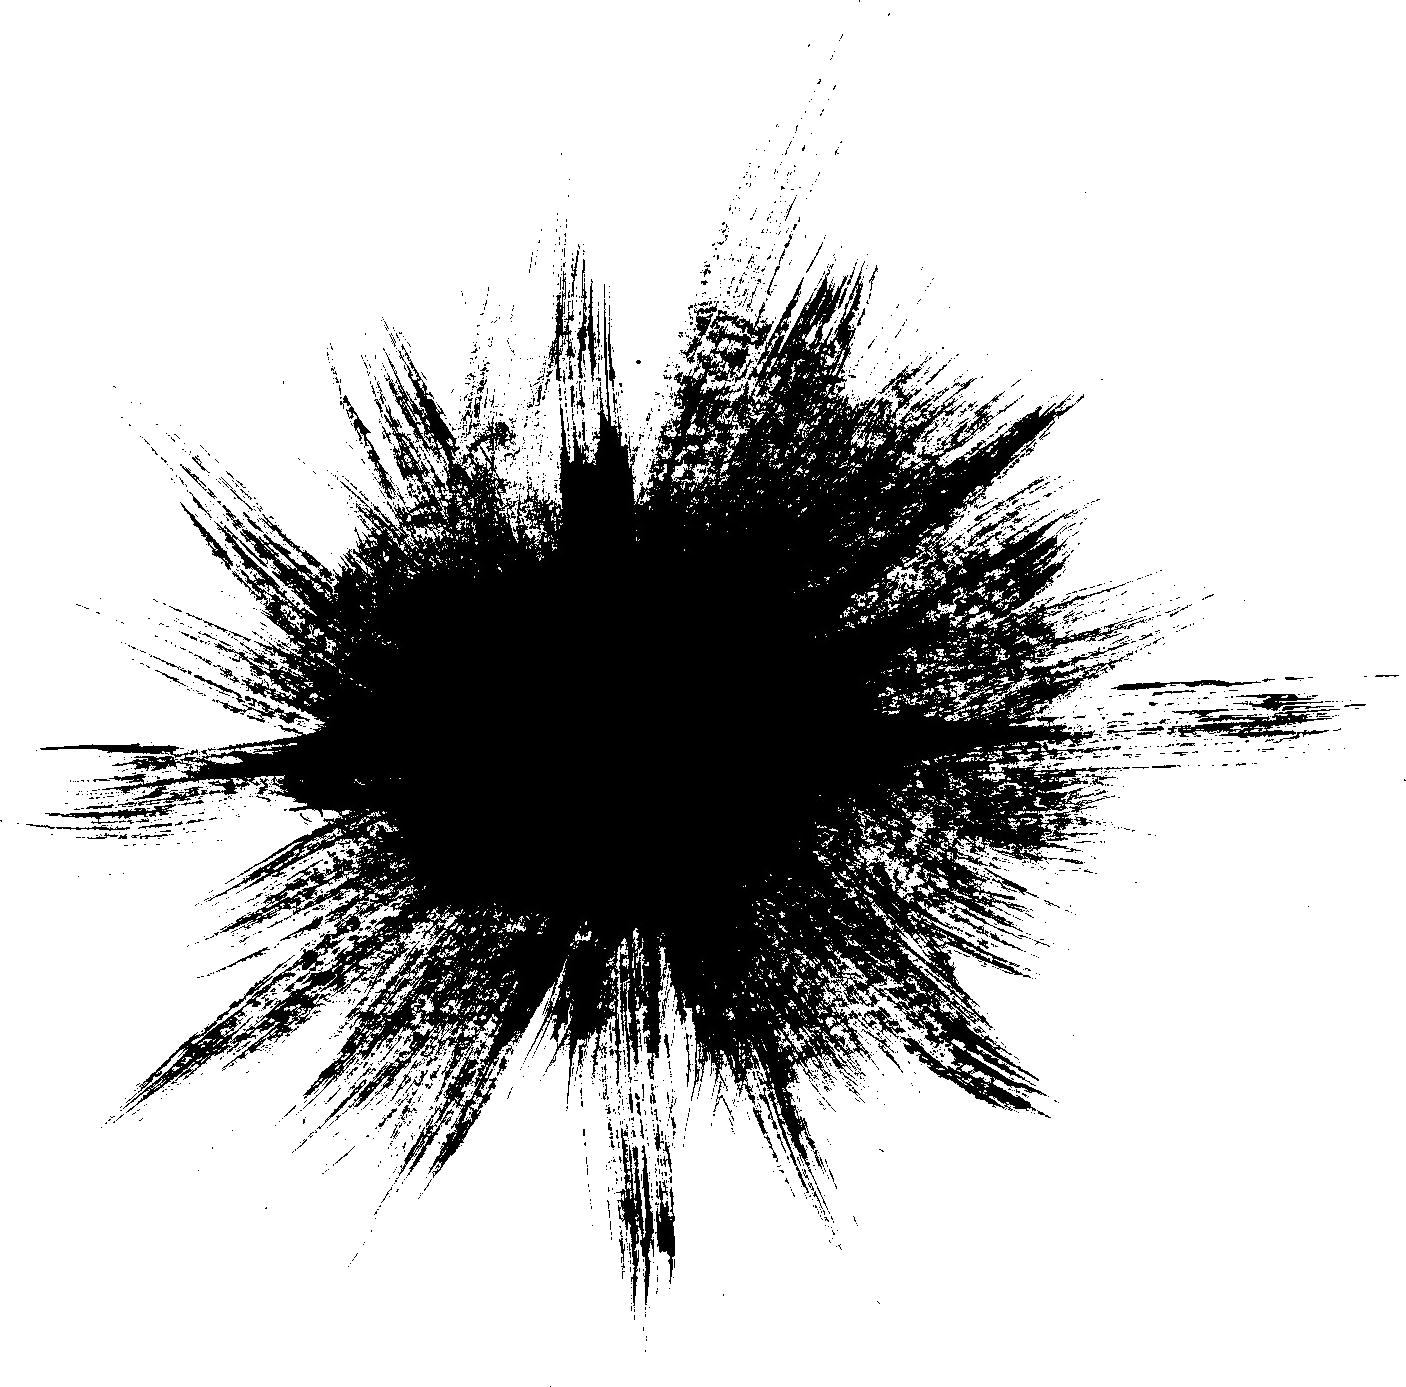 Transparent explosions circle. Grunge explosion png